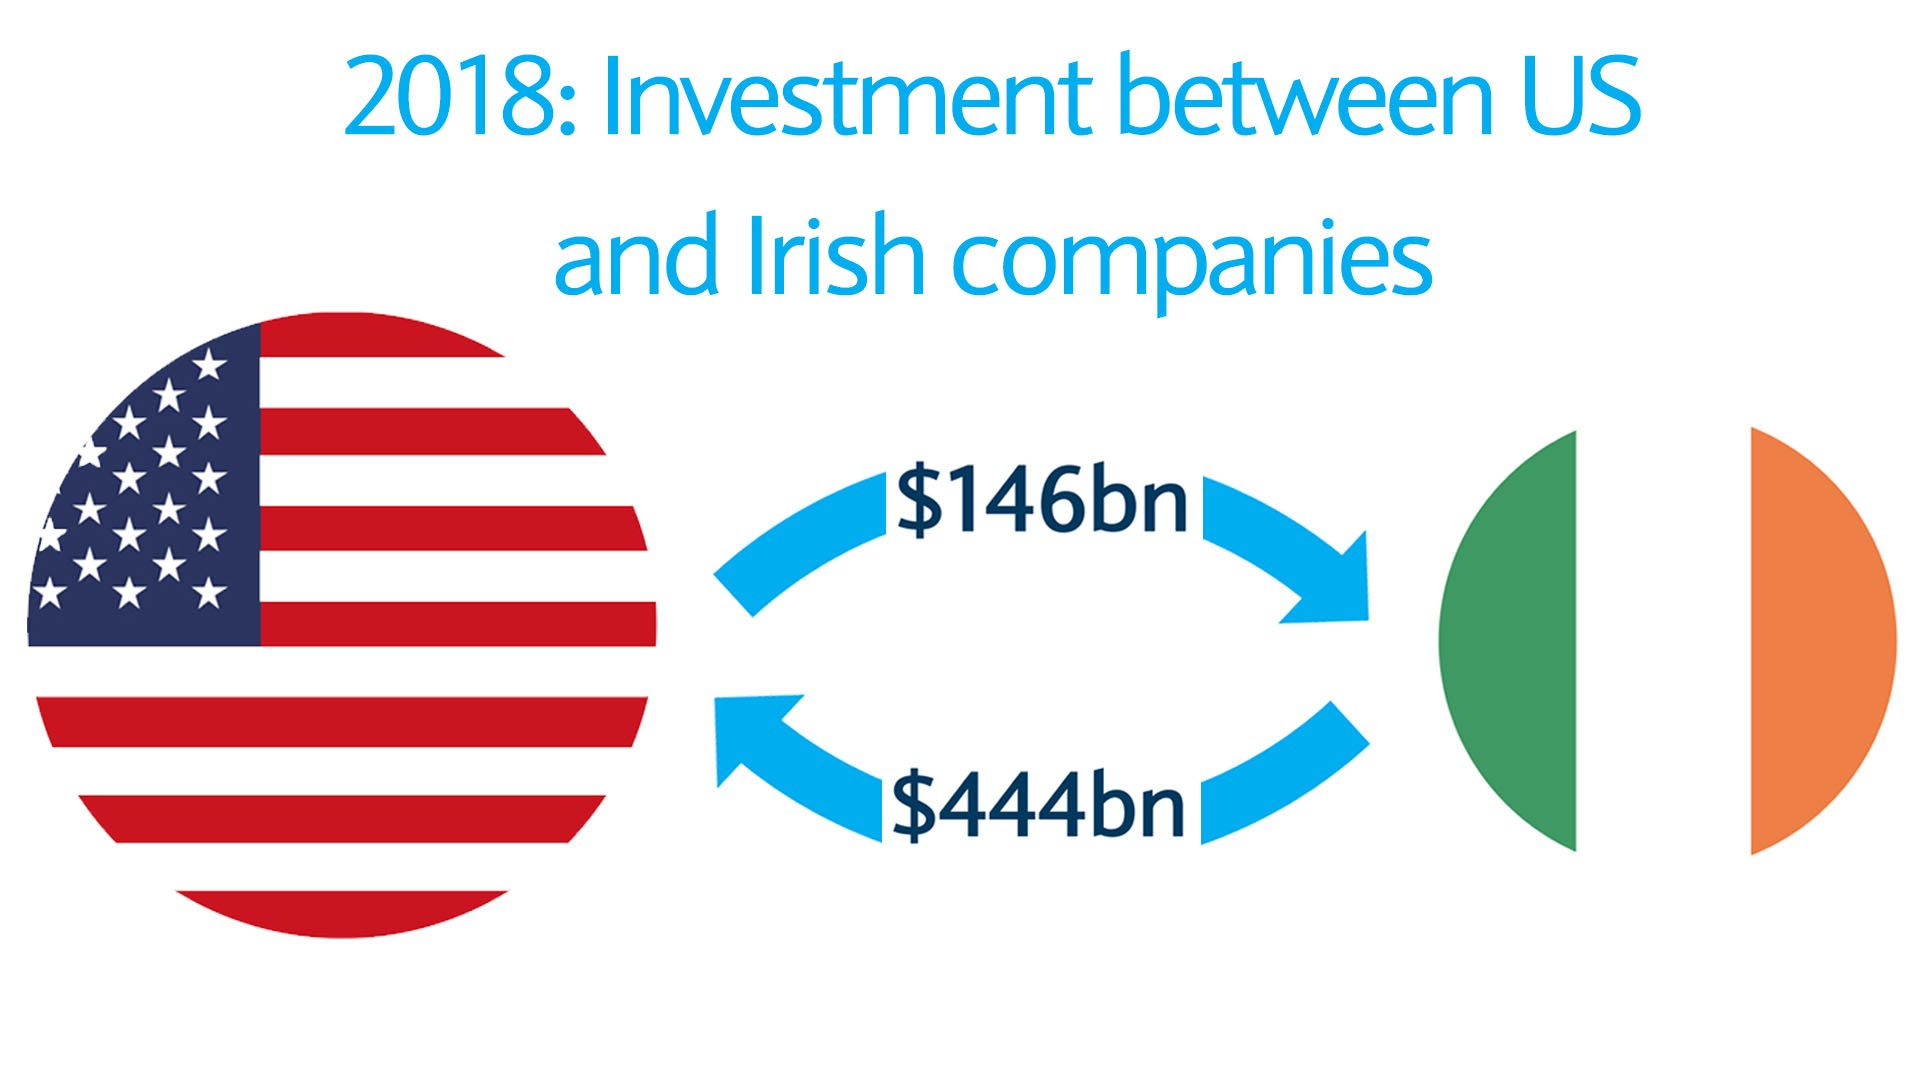 2018 investment between US and Irish compoanies